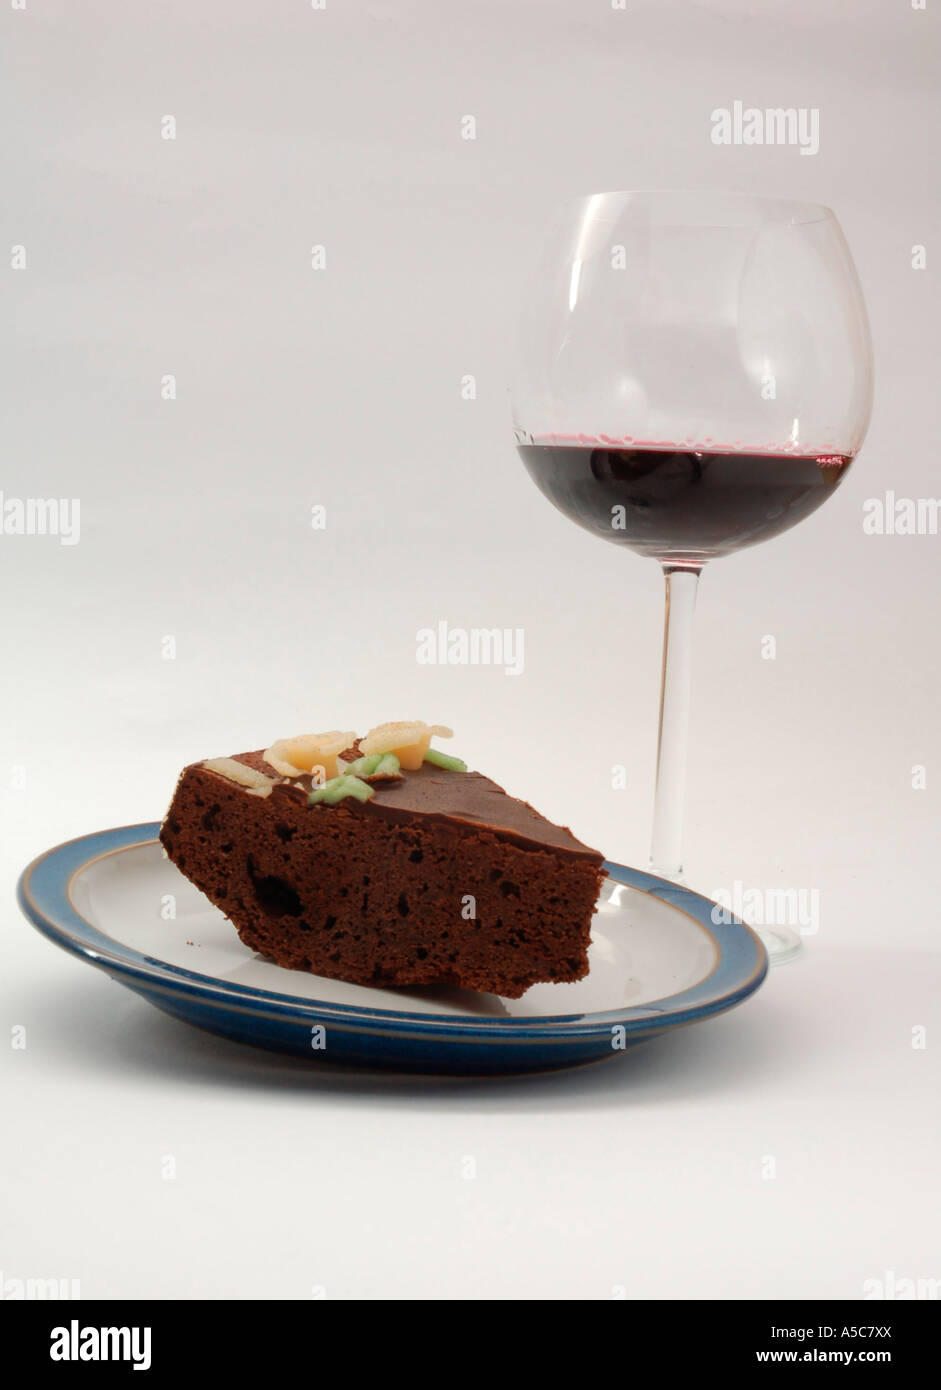 Birthday Cake A Slice Of Chocolate Cake And A Glass Of Red Wine